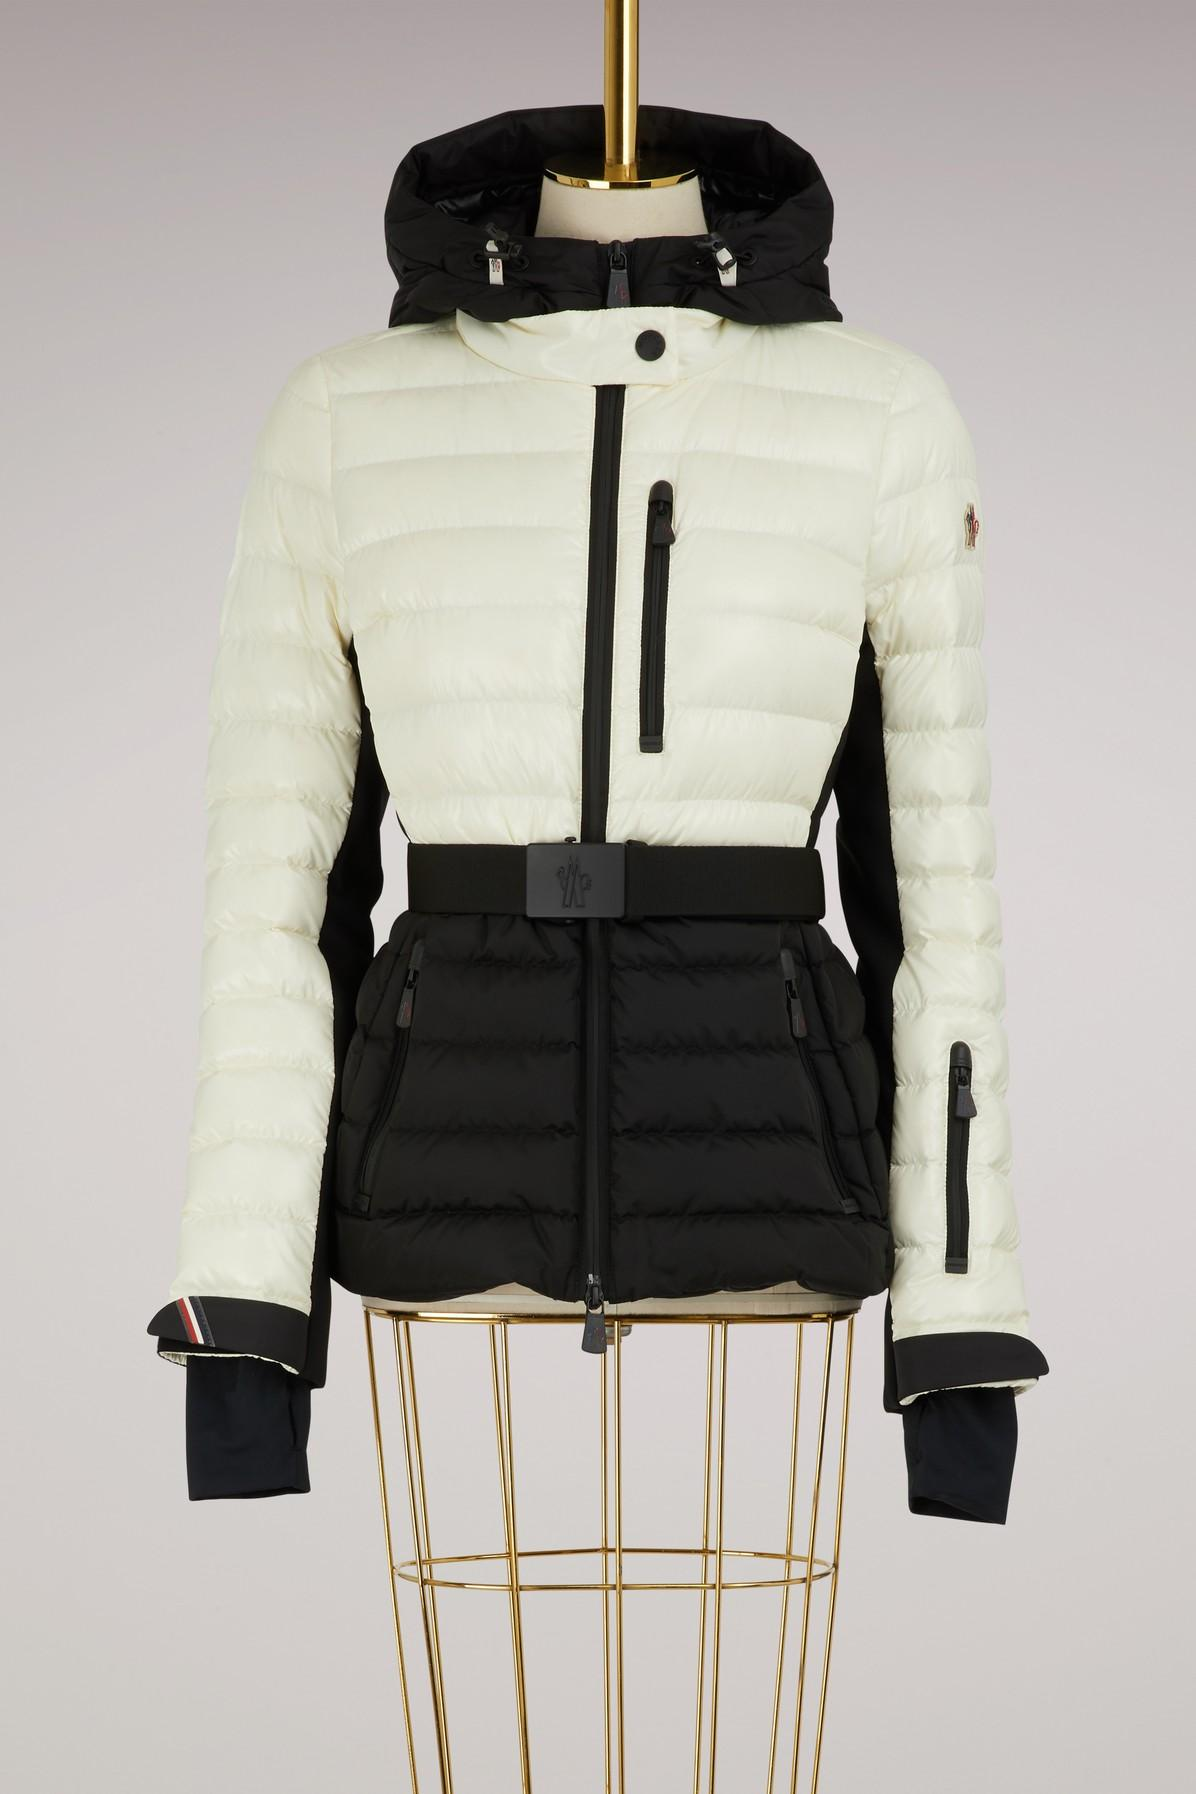 d9f5187326 Moncler Grenoble Bruche Belted Two-Tone Quilted Ski Jacket In Black White